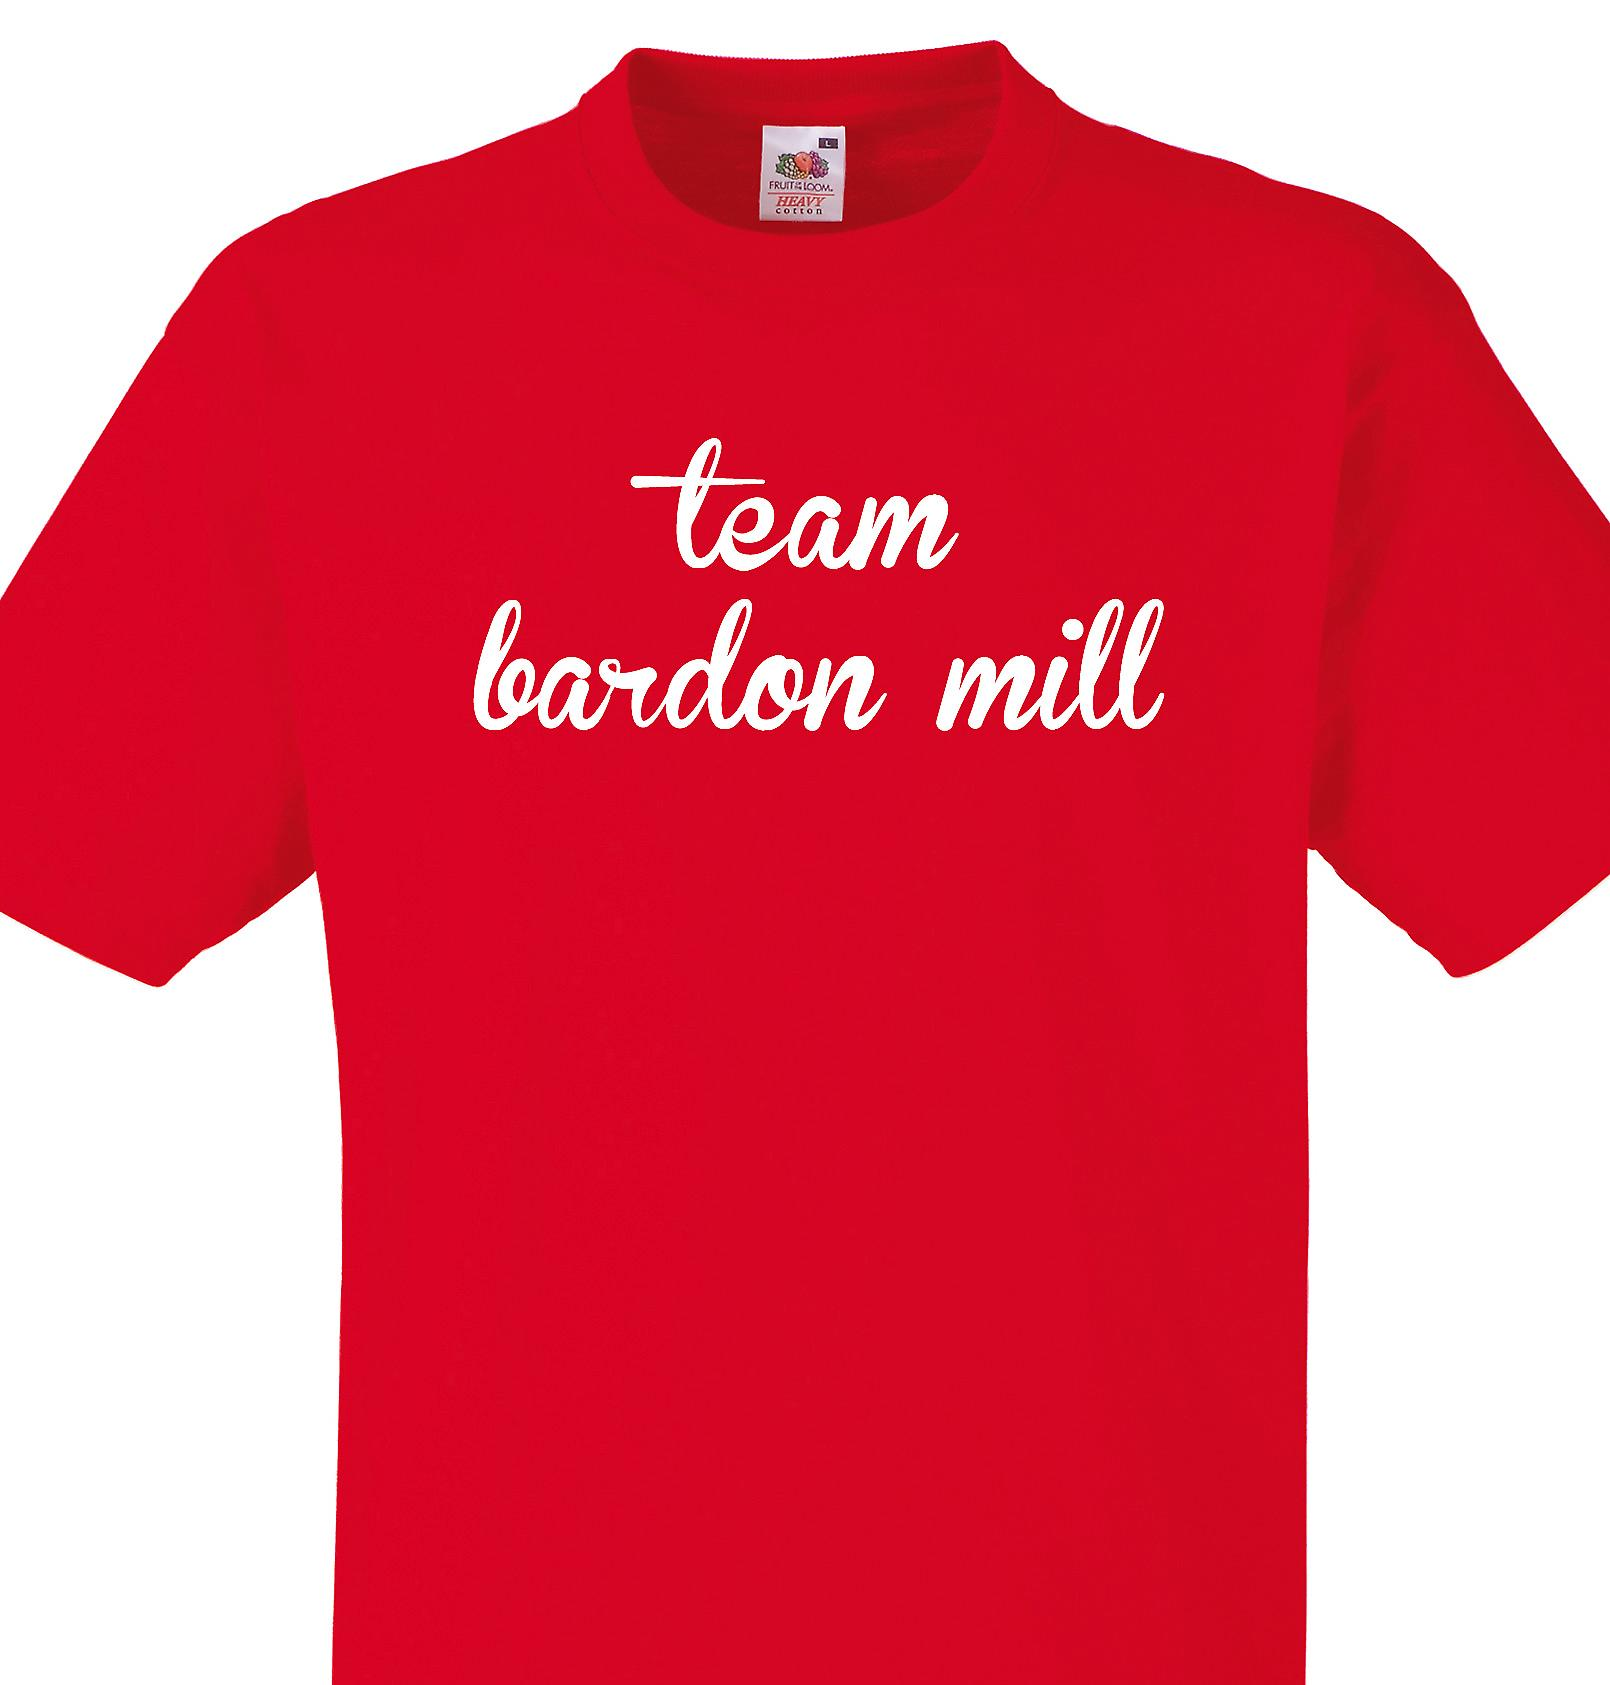 Team Bardon mill Red T shirt